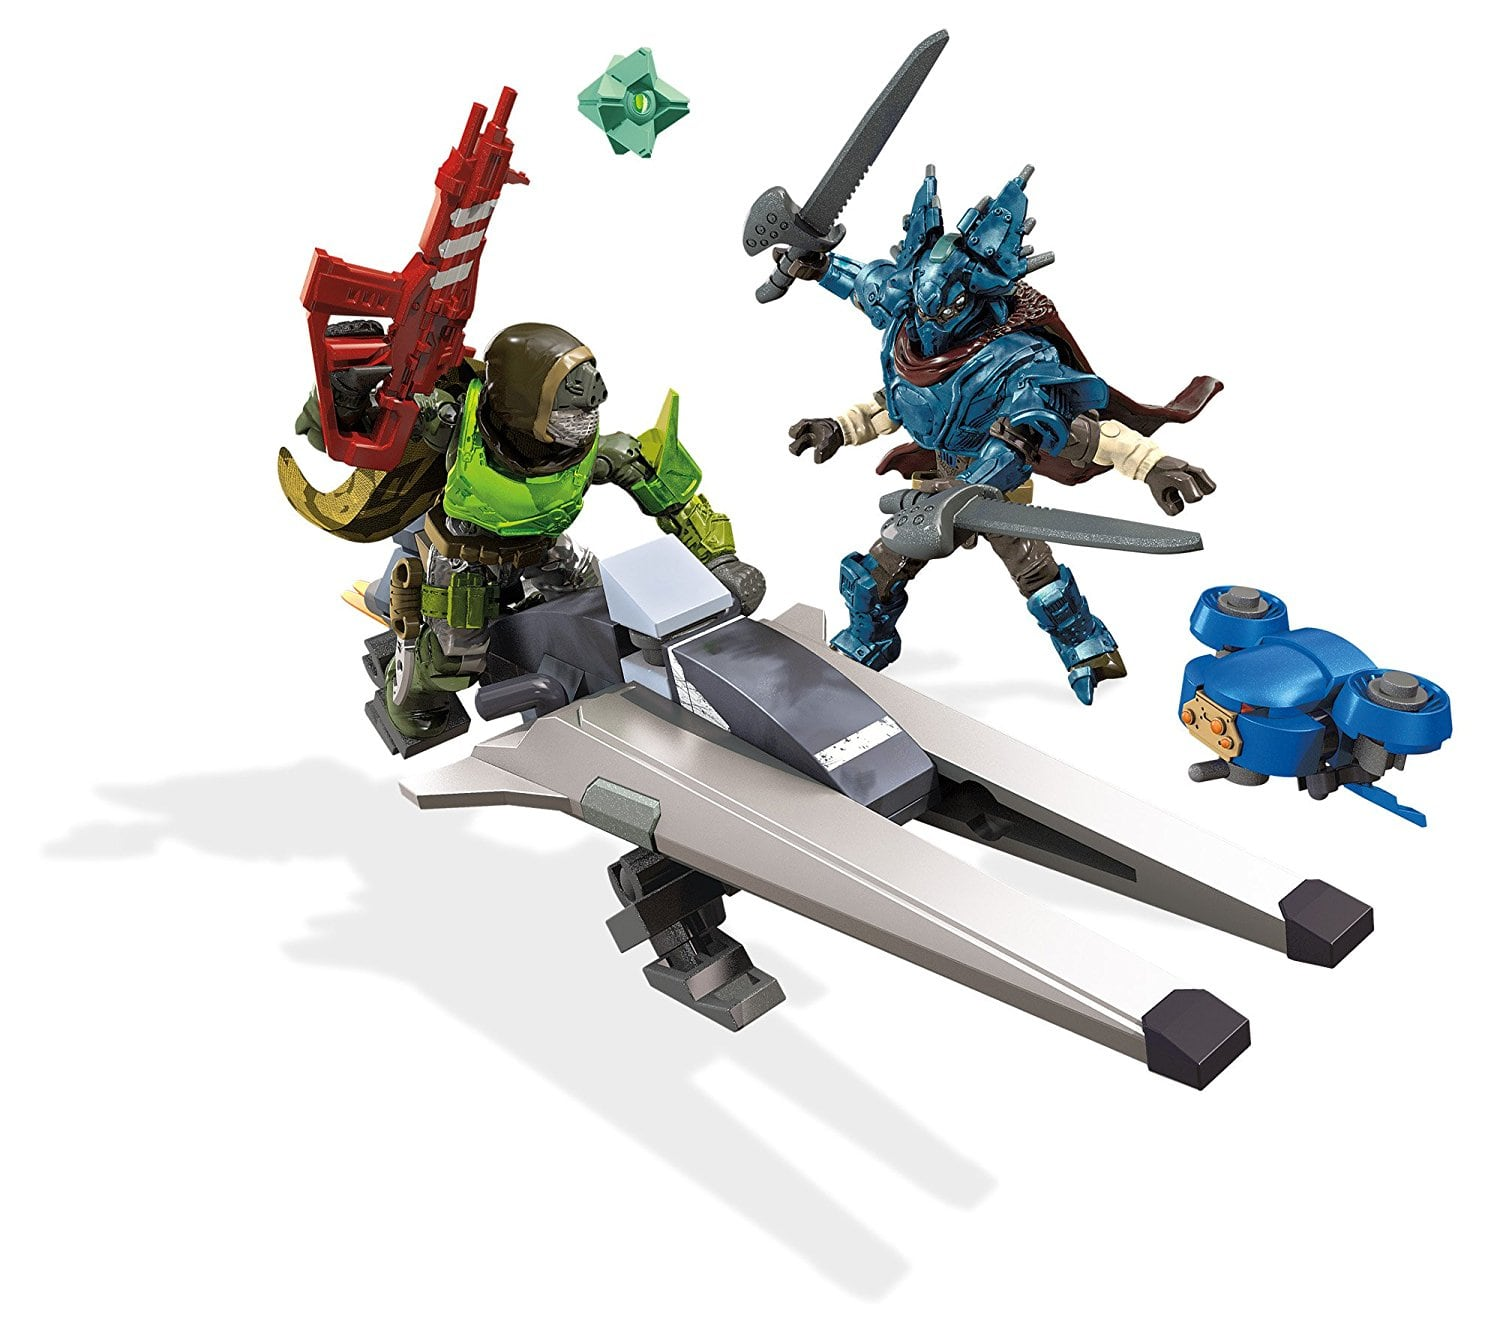 Mega Construx Destiny Sparrow S-31V Building Kit (Add-On) $3.25 + Others